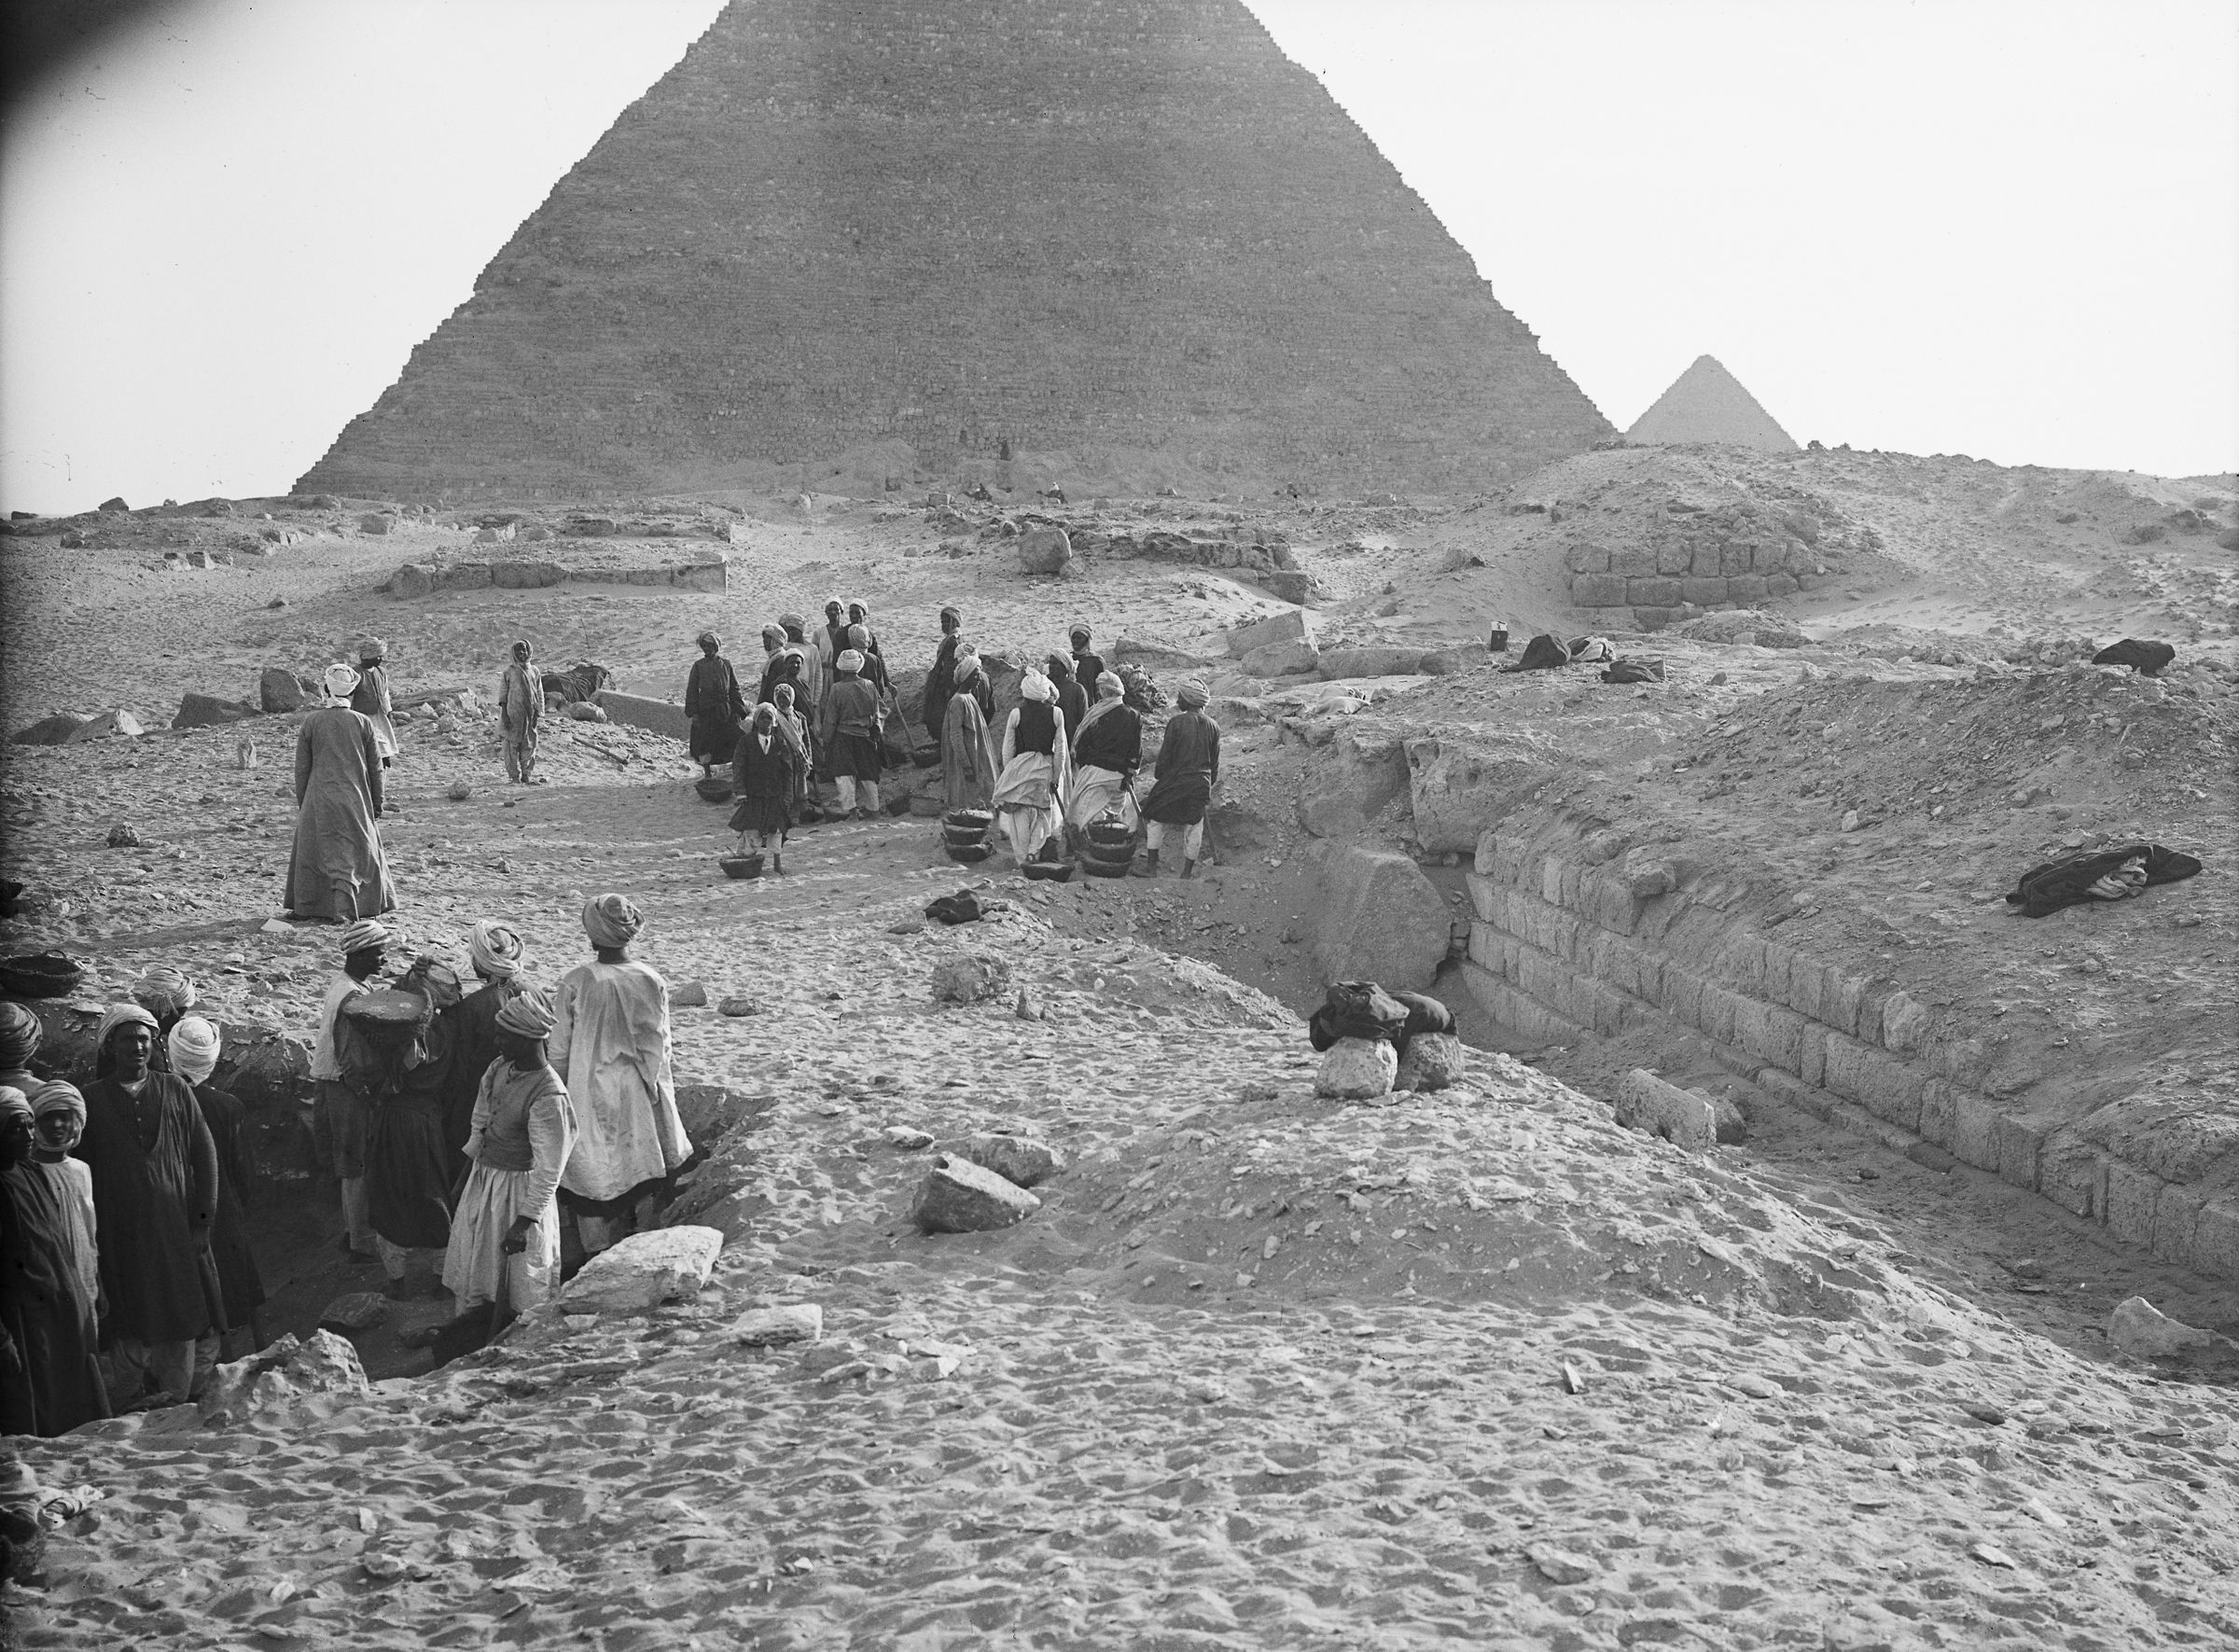 Western Cemetery: Site: Giza; View: G 2120, G 2130, G 2100, G 2100-I